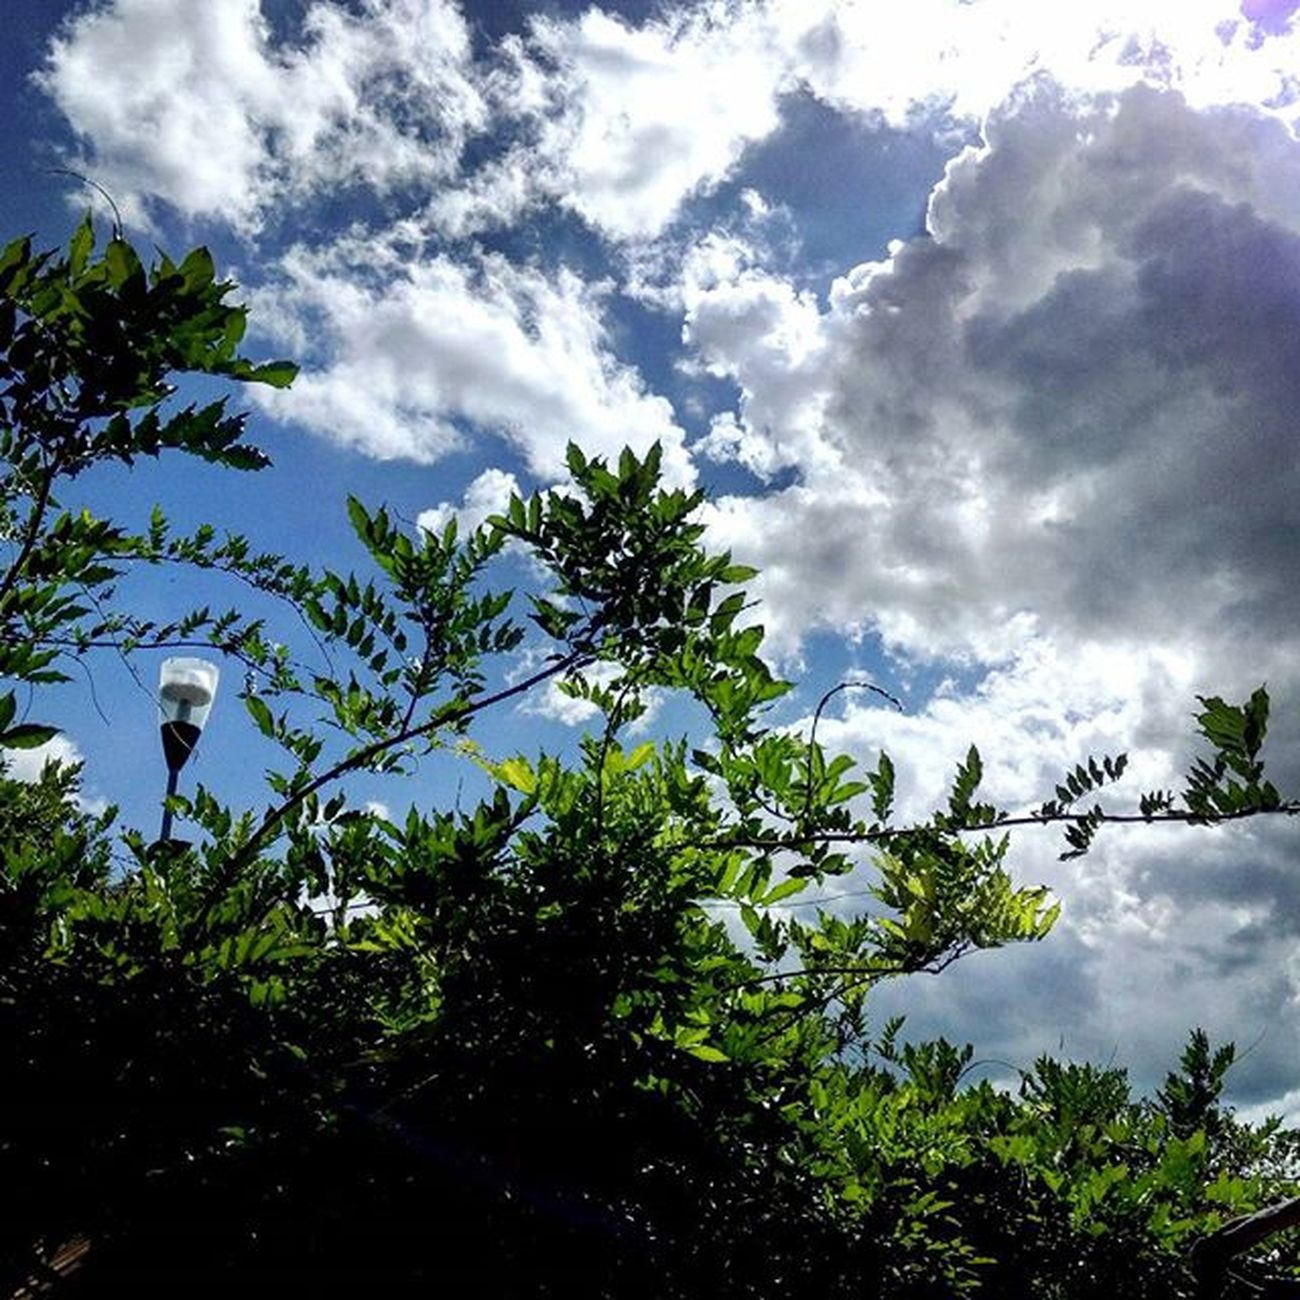 incontro . Sky Skylovers SkyClouds Clouds Cloudscape Cloudslovers Leaves Blue Green Nature Naturelovers Marche Italy Italia Igersmarche Igersitalia Liveloveitalia Cielo Cieloazzurro Sunlight Landscape